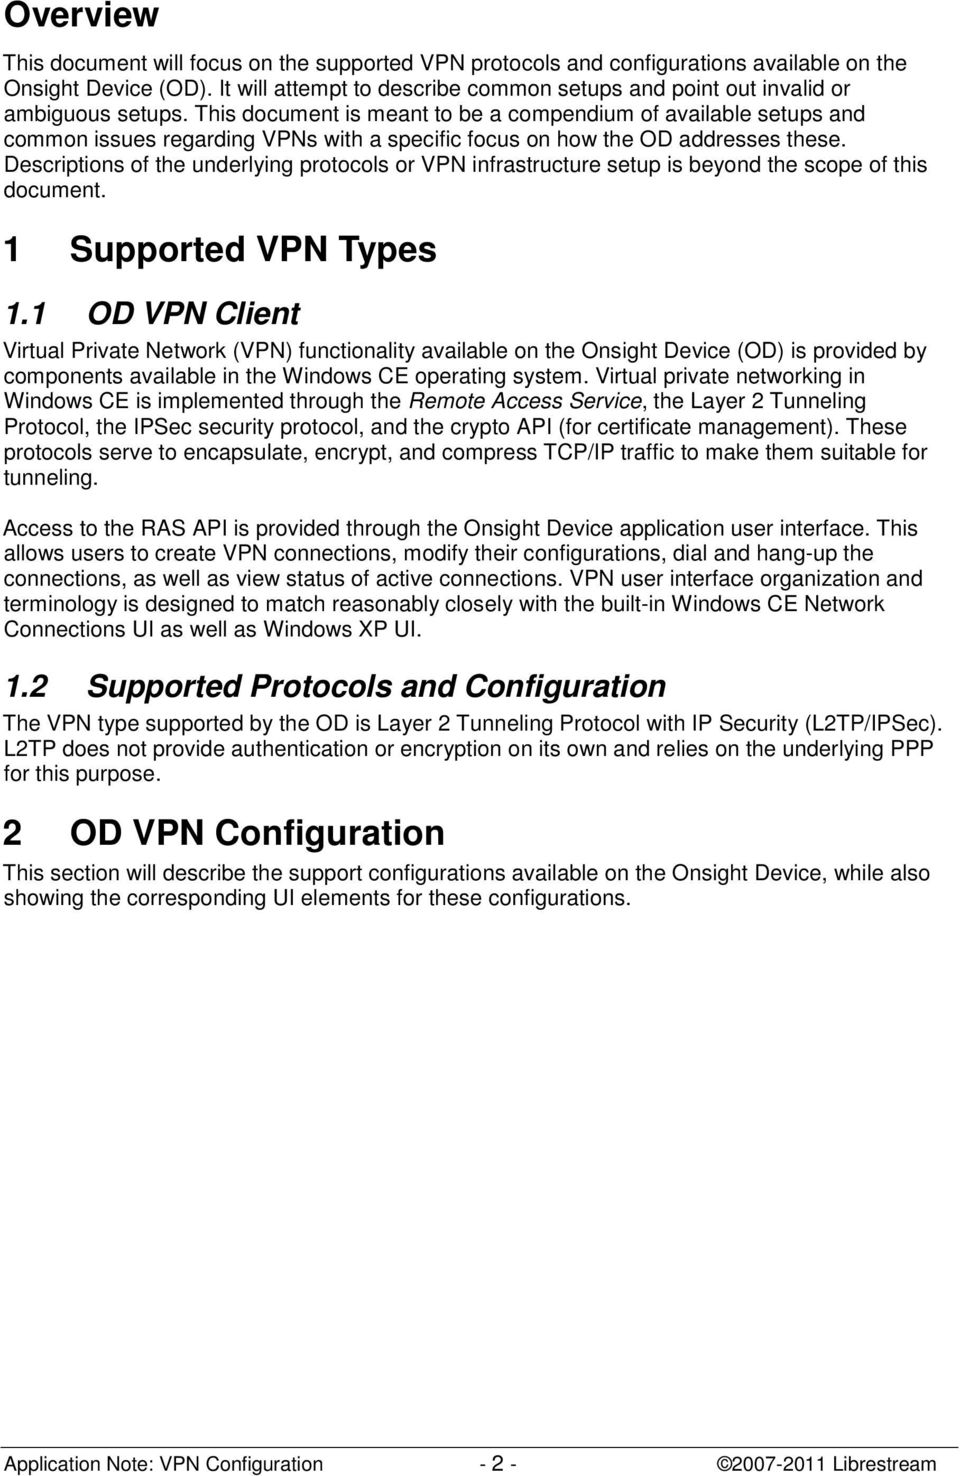 This document is meant to be a compendium of available setups and common issues regarding VPNs with a specific focus on how the OD addresses these.